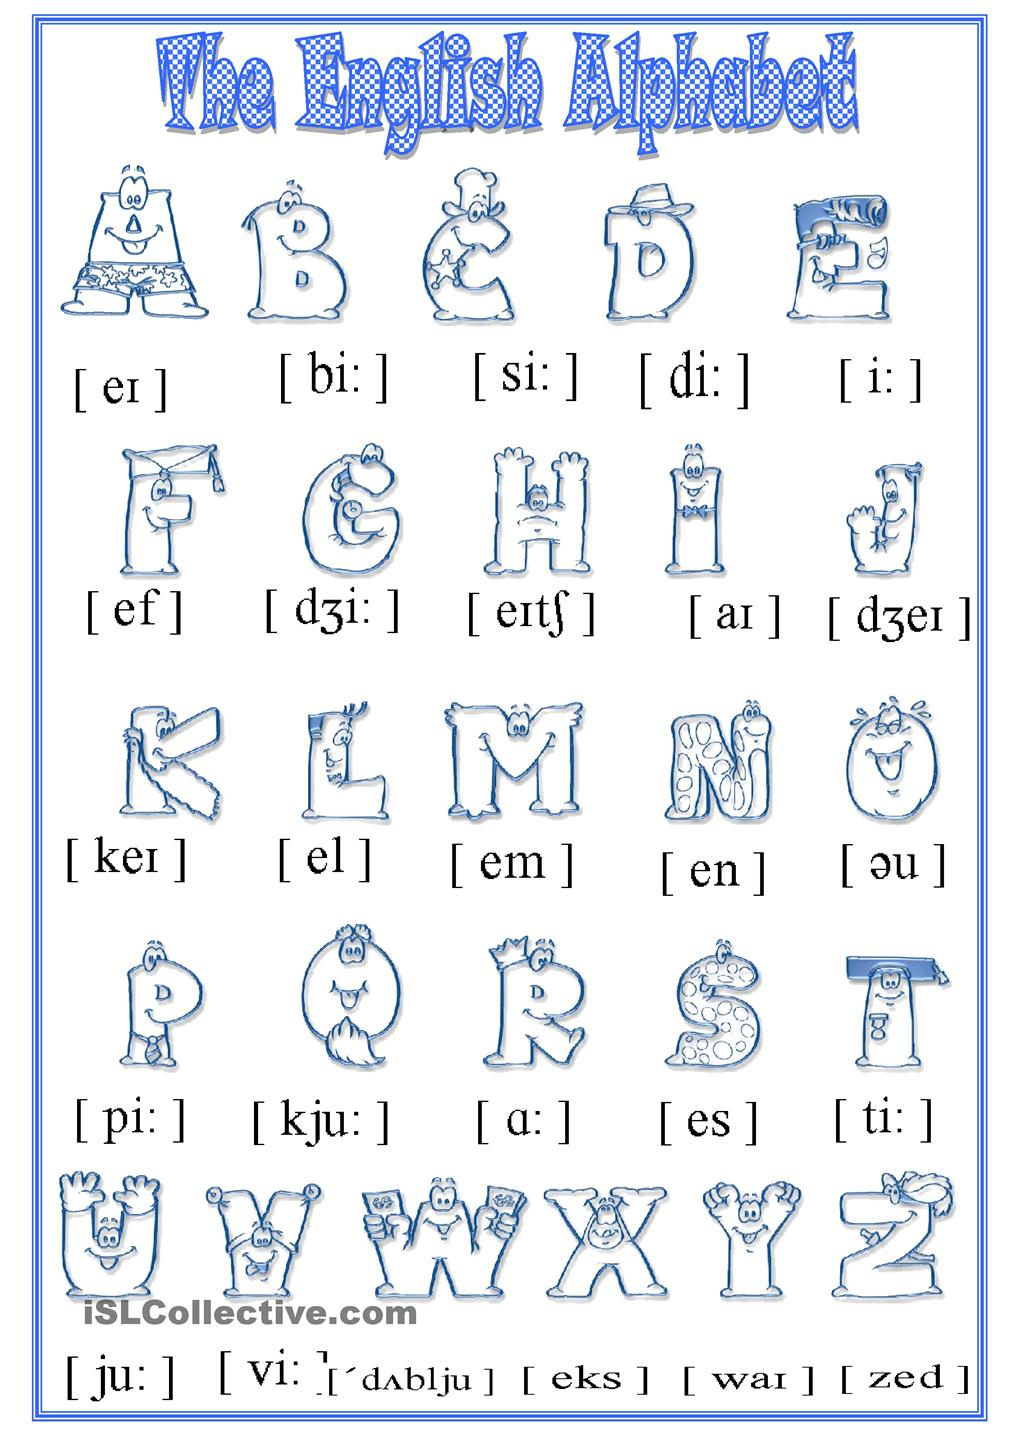 Spanish Alphabet Worksheet Printable - Photos Alphabet Collections - Free Printable Spanish Alphabet Worksheets